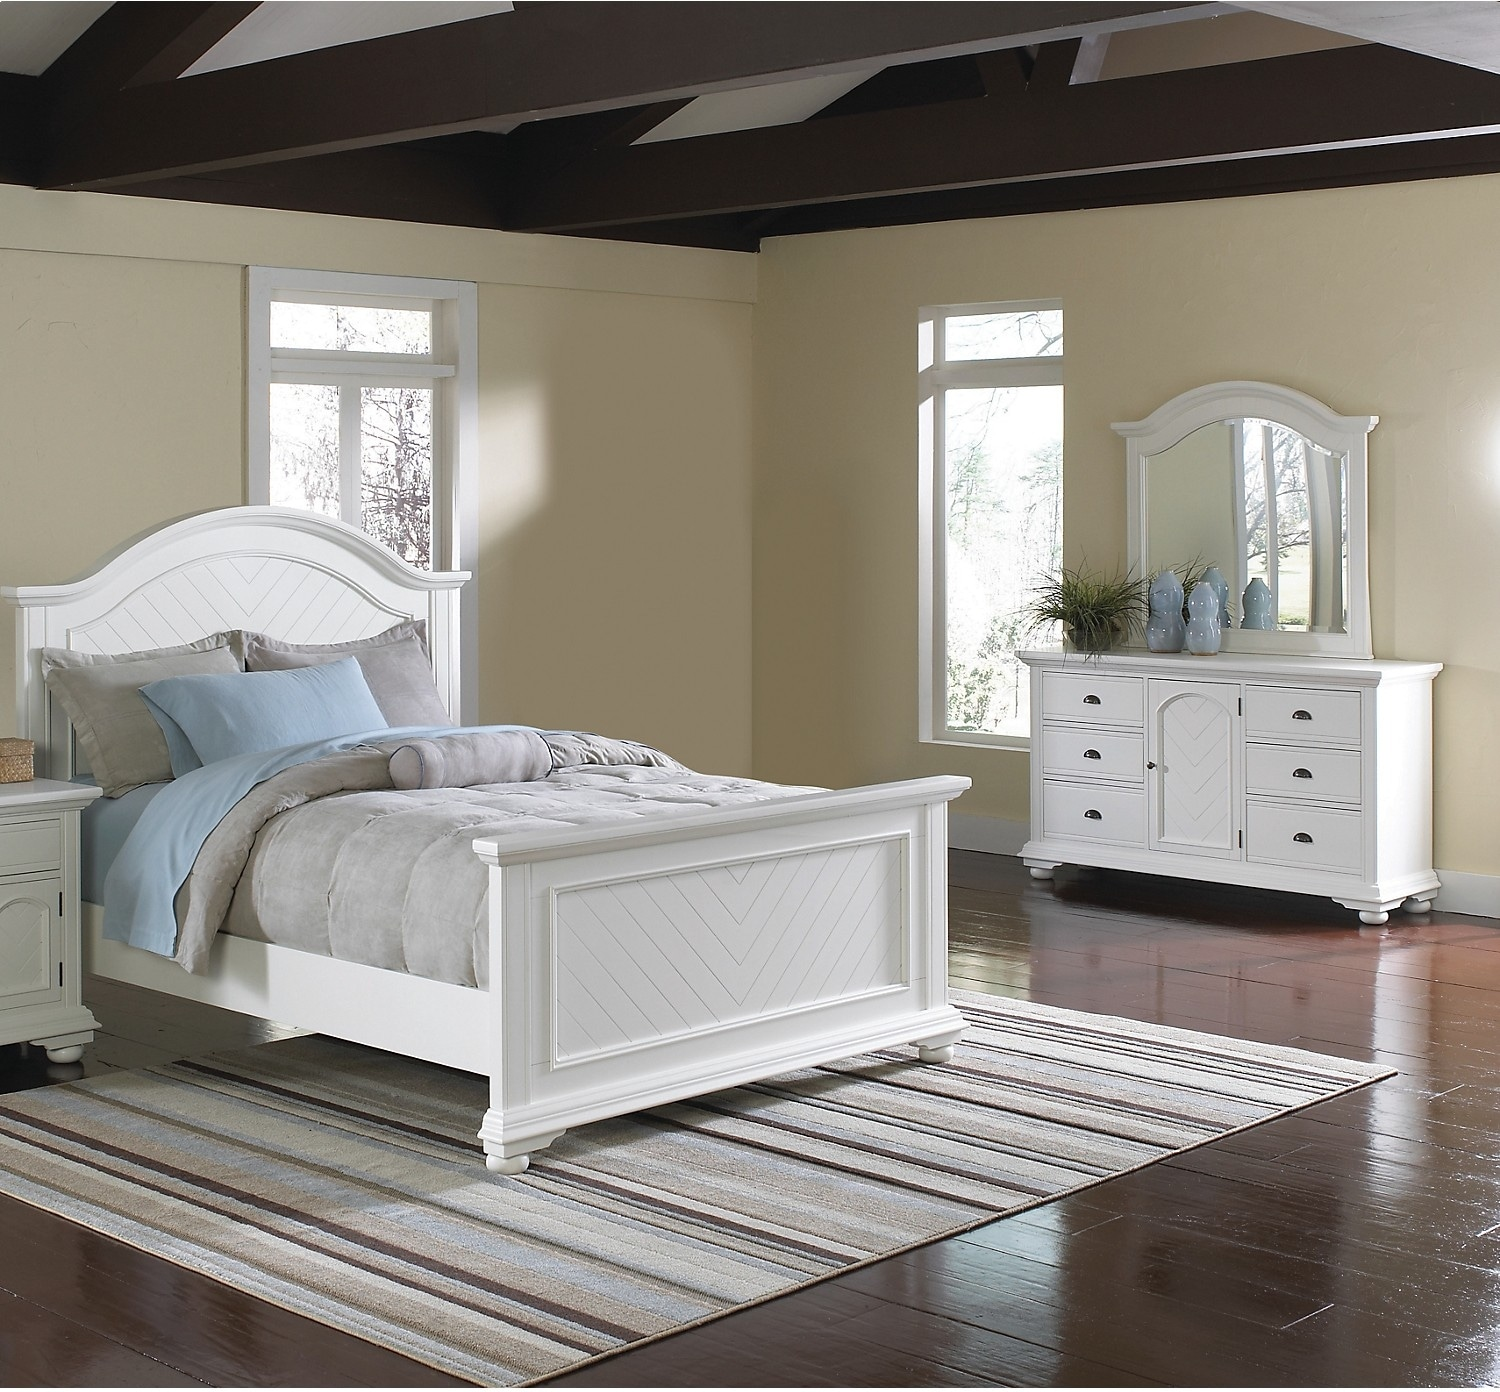 Bedroom Sets Victoria Bc bedroom packages | the brick